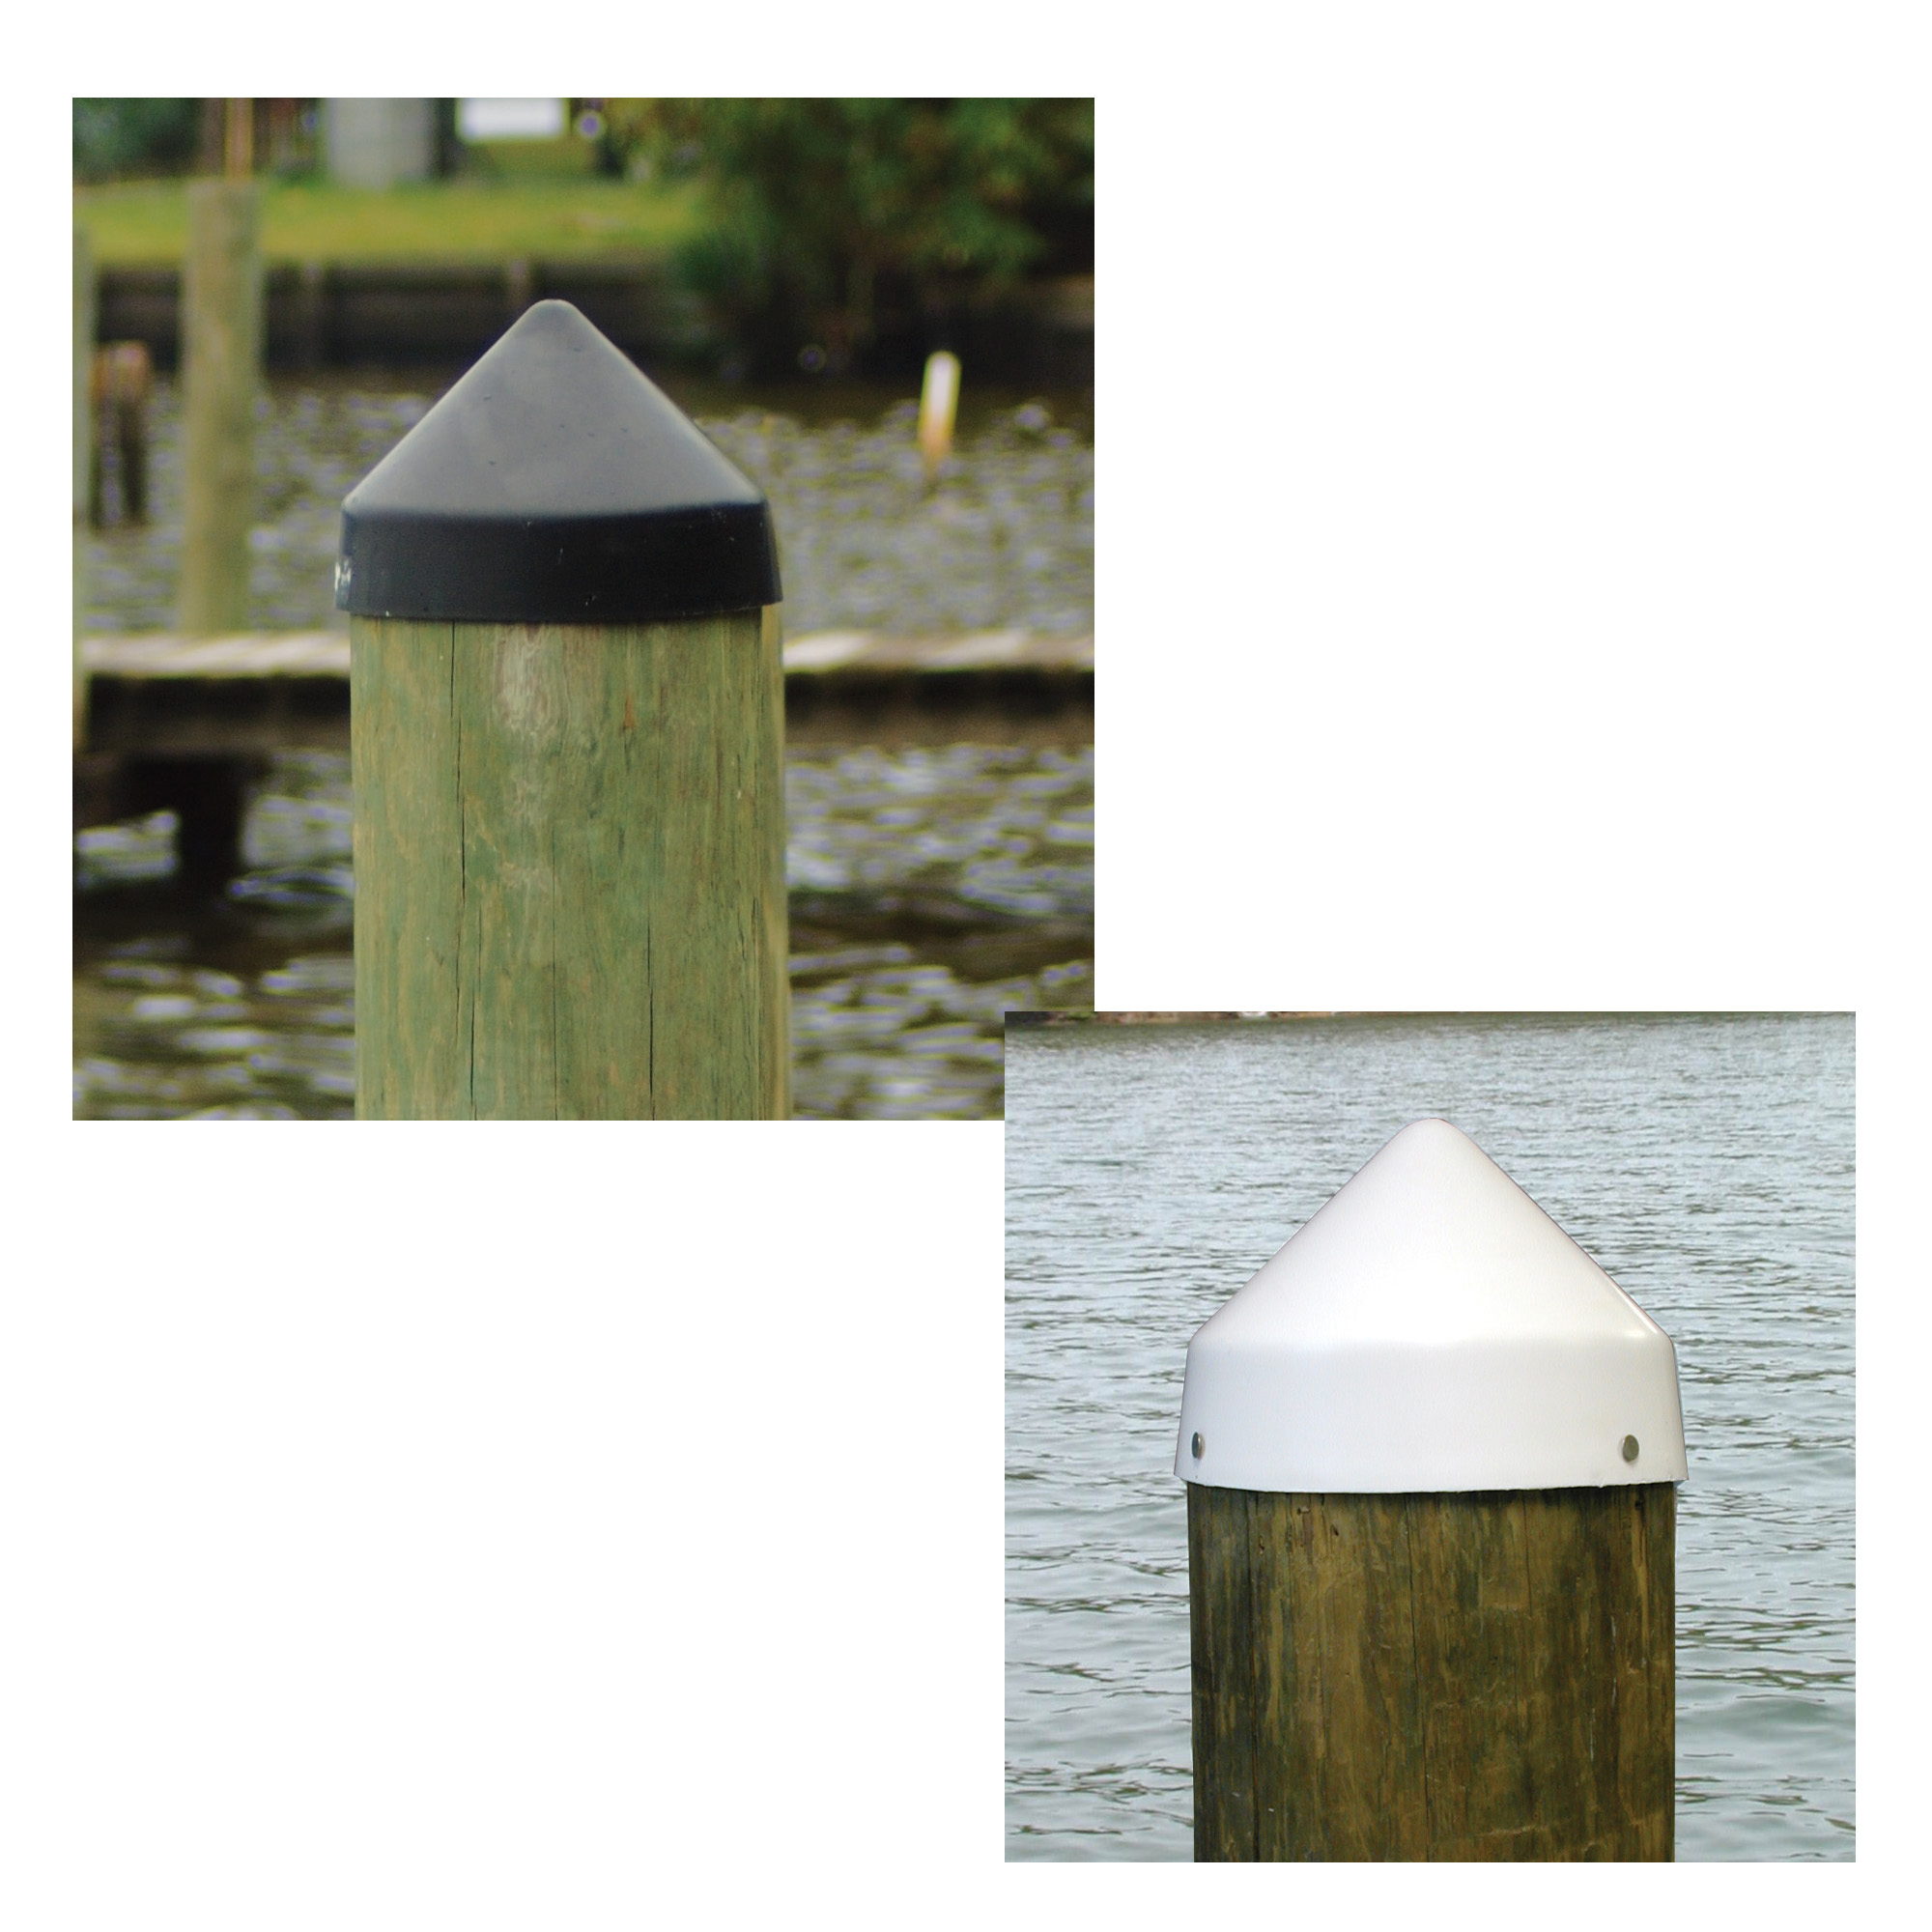 Dockmate Conehead Piling Caps For Round Pilings